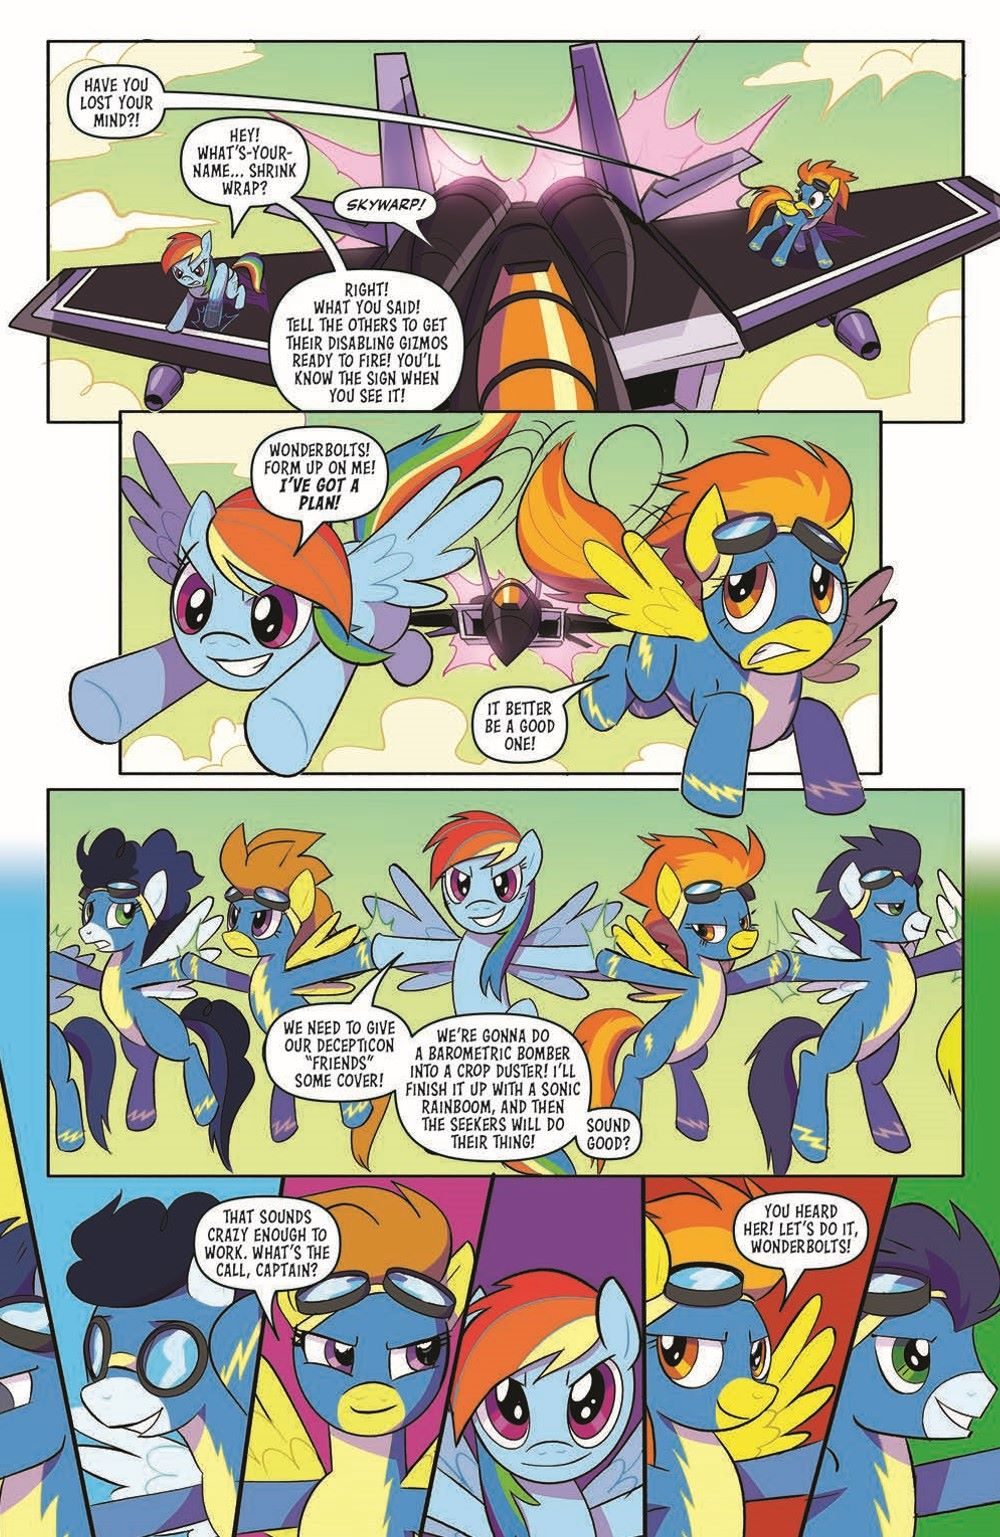 TFMLP2-02-pr-7 ComicList Previews: MY LITTLE PONY TRANSFORMERS II #2 (OF 4)